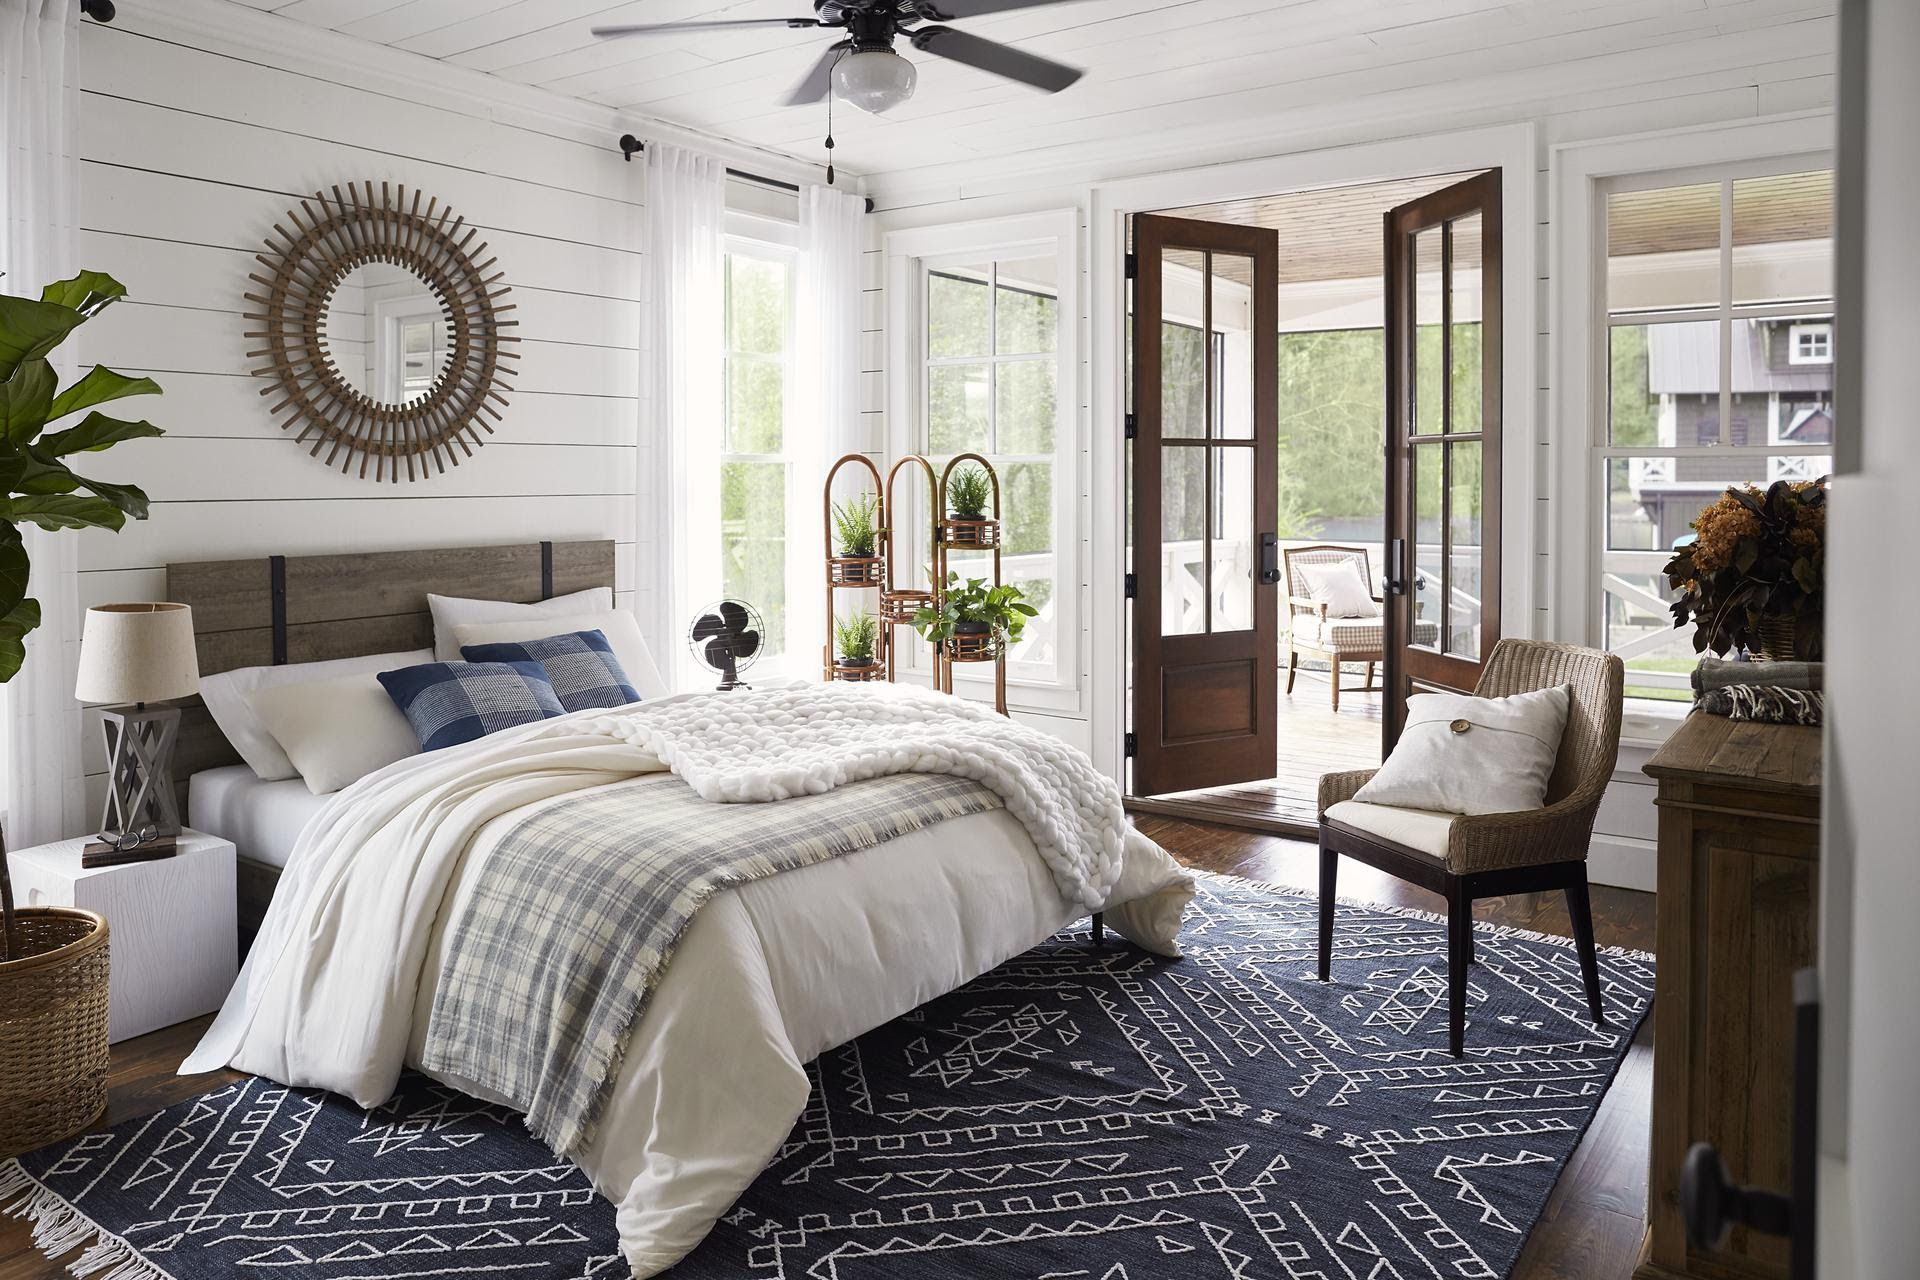 lake house bedroom paint color ideas furniture decor on house paint interior color ideas id=99056